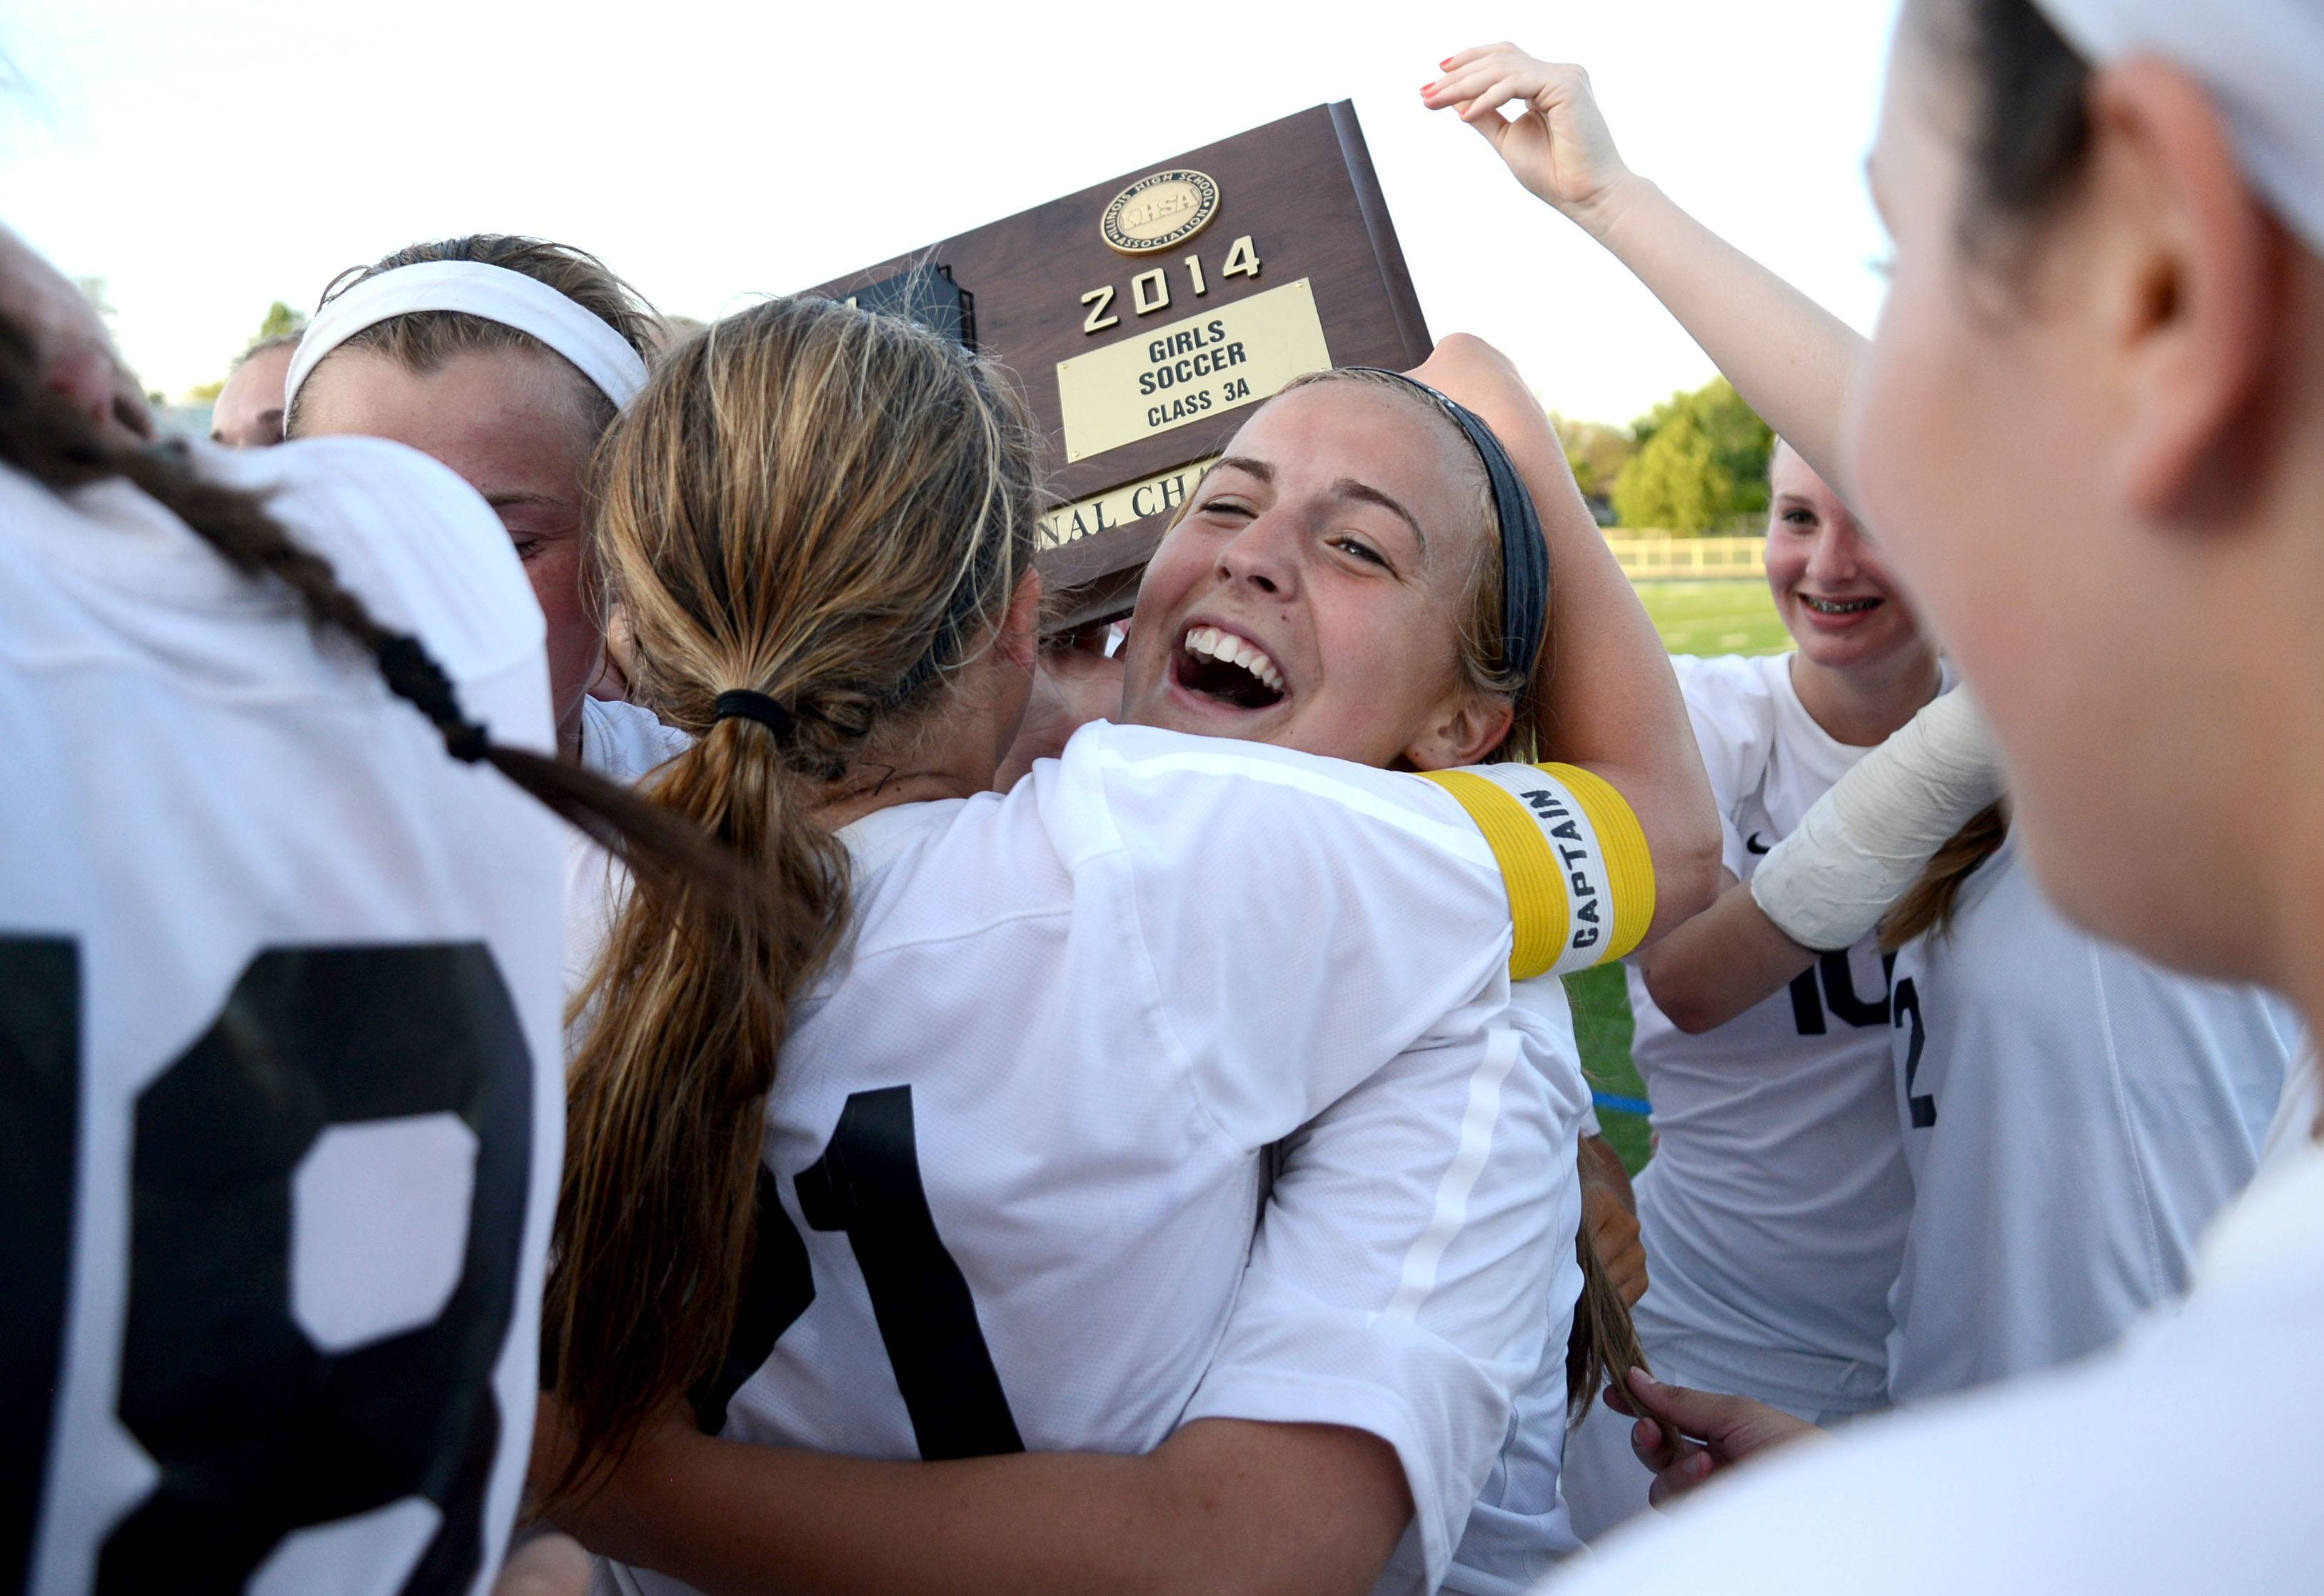 St. Charles East's Anna Corirosi (facing) and Amanda Hilton embrace after accepting their Class 3A girls soccer supersectional plaque at Lake Park High School in Roselle on Tuesday, June 3.